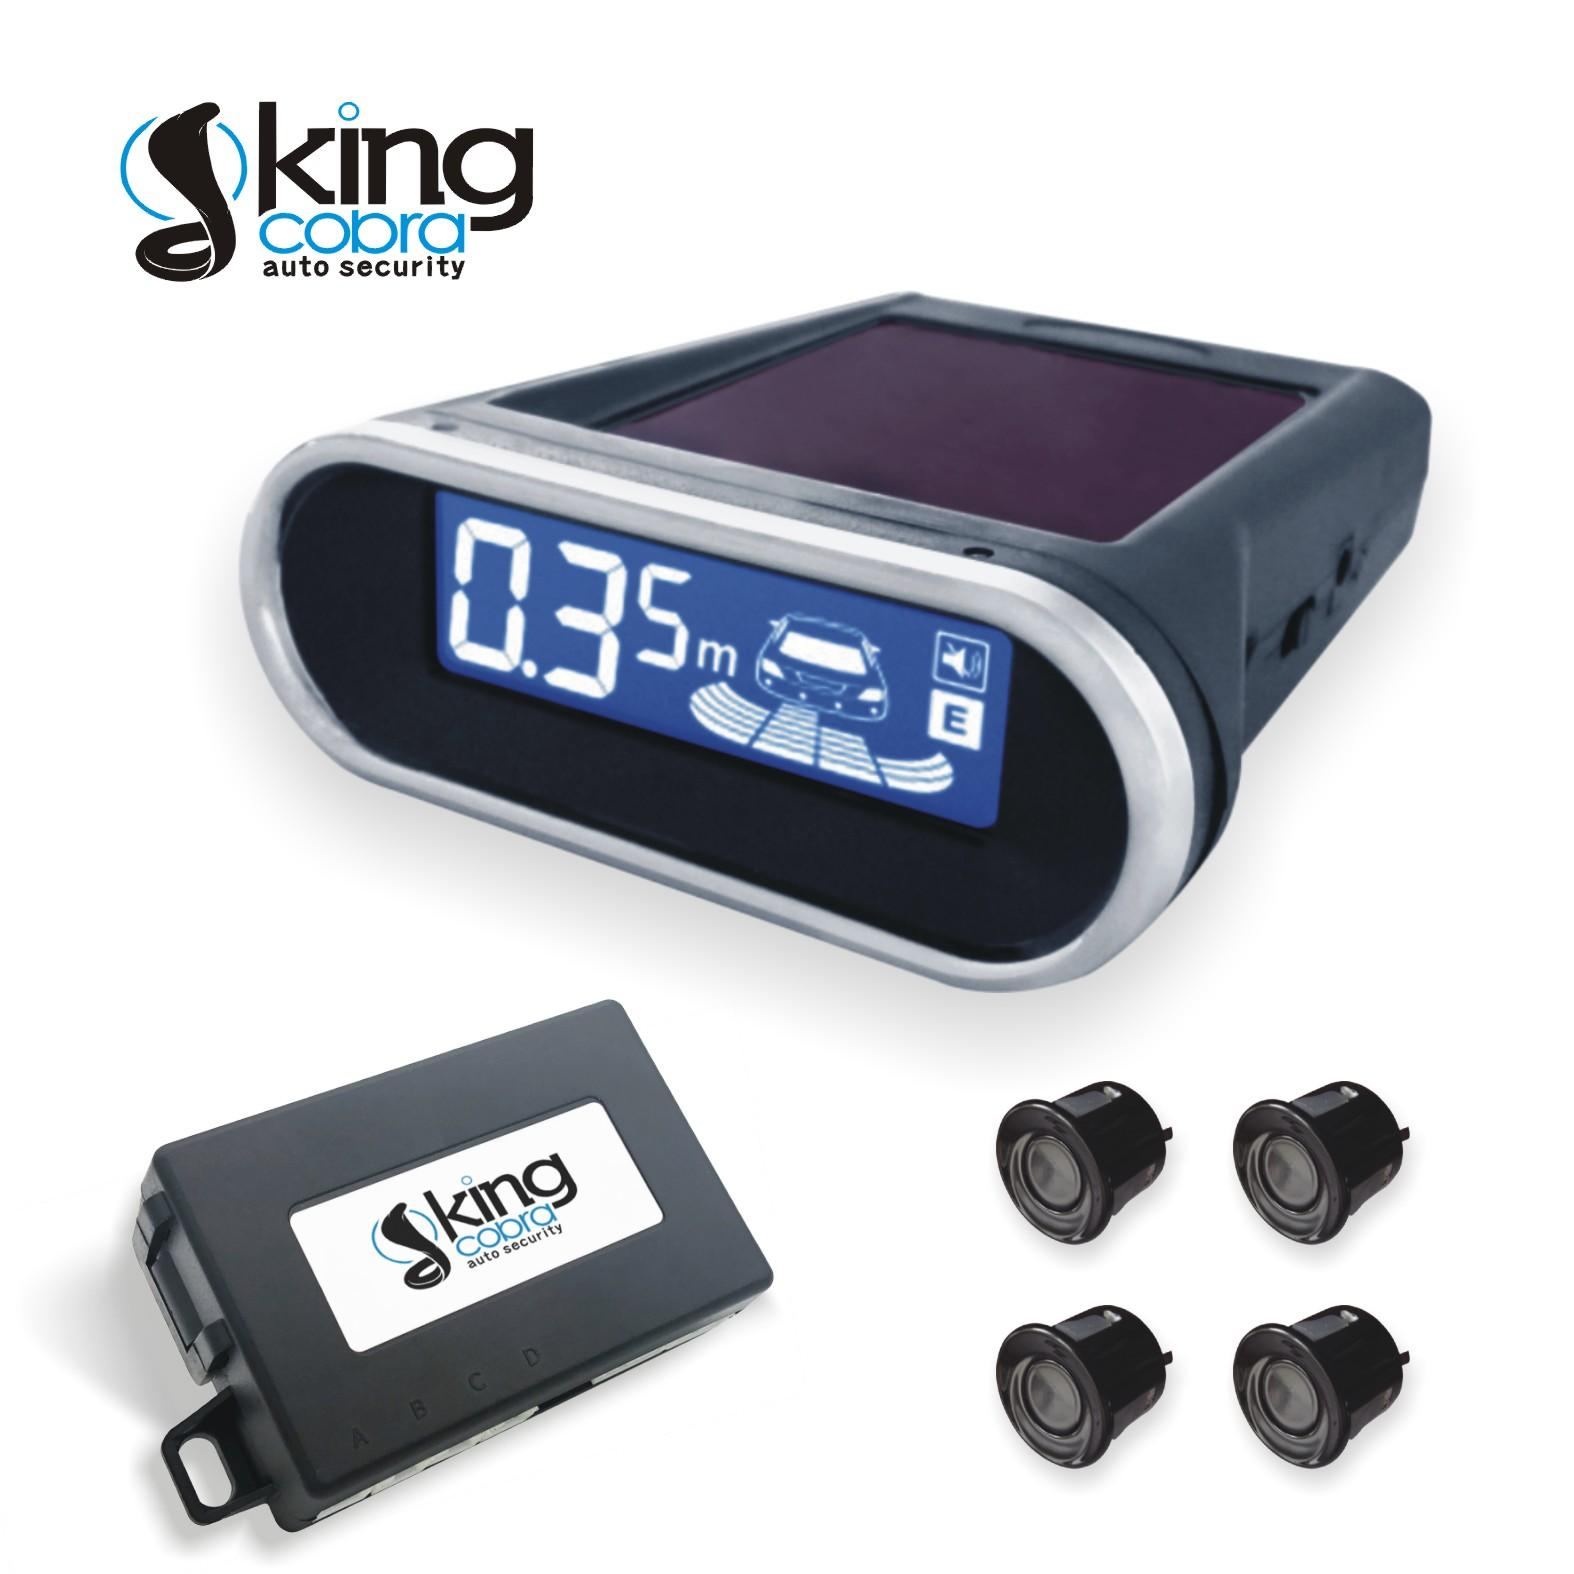 Kingcobra hot sale best car parking sensor auto accessories online